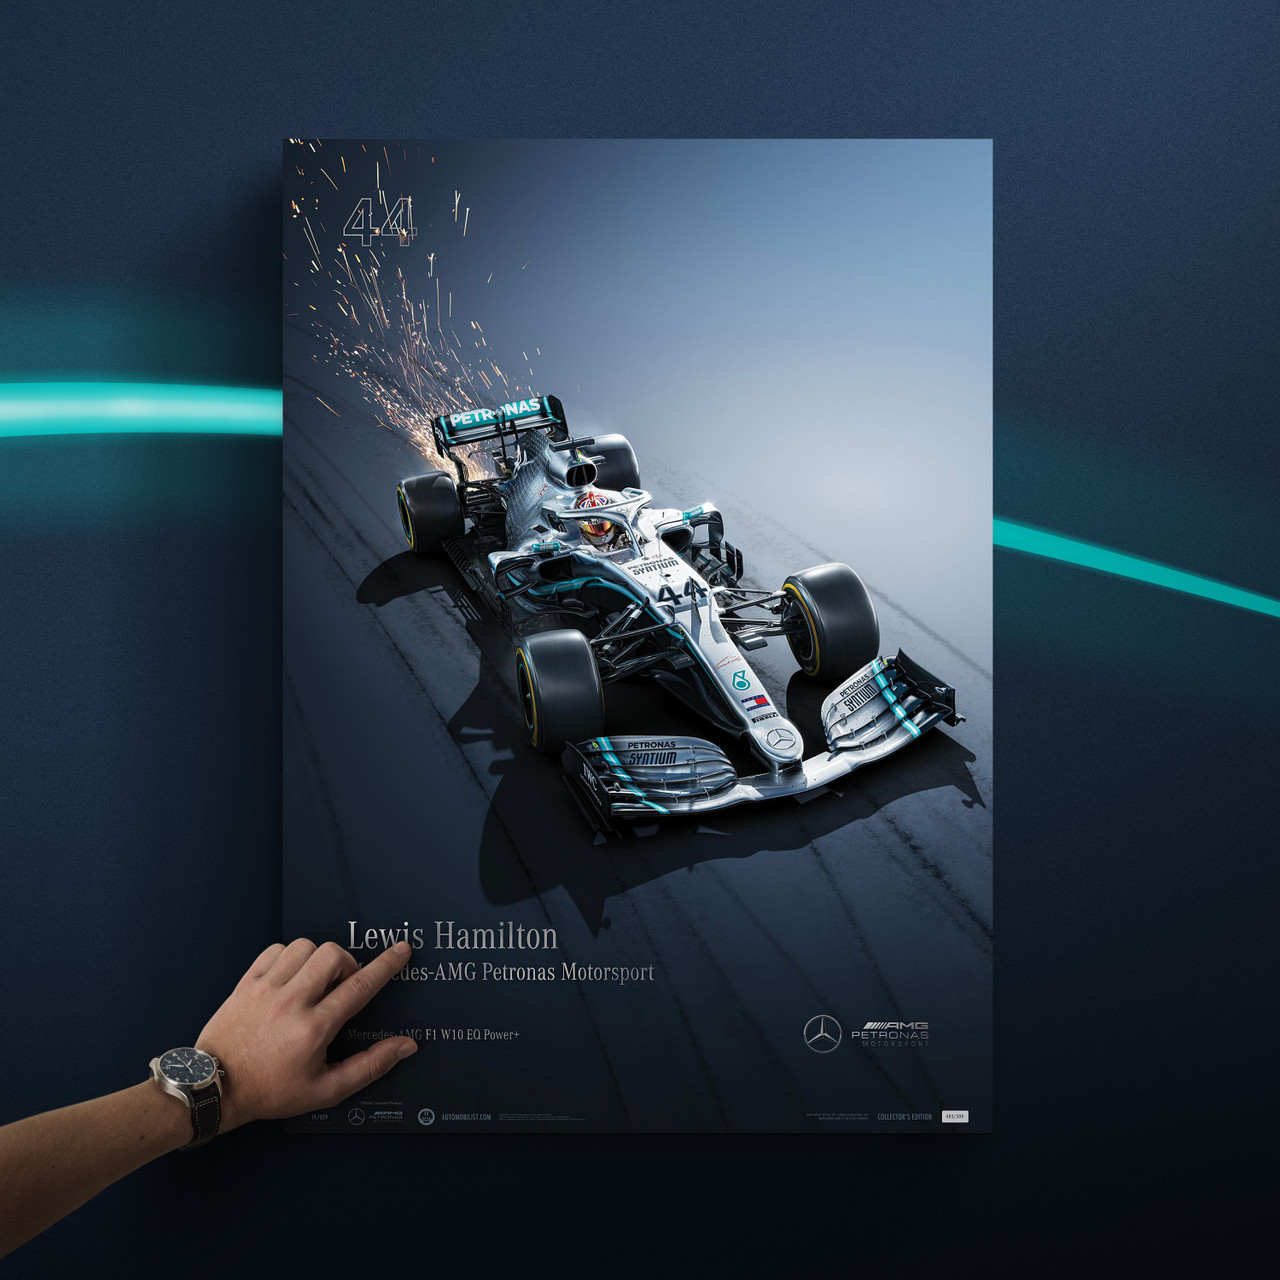 Lewis Hamilton Mercedes 2014  F1 Signed Limited Edition Print